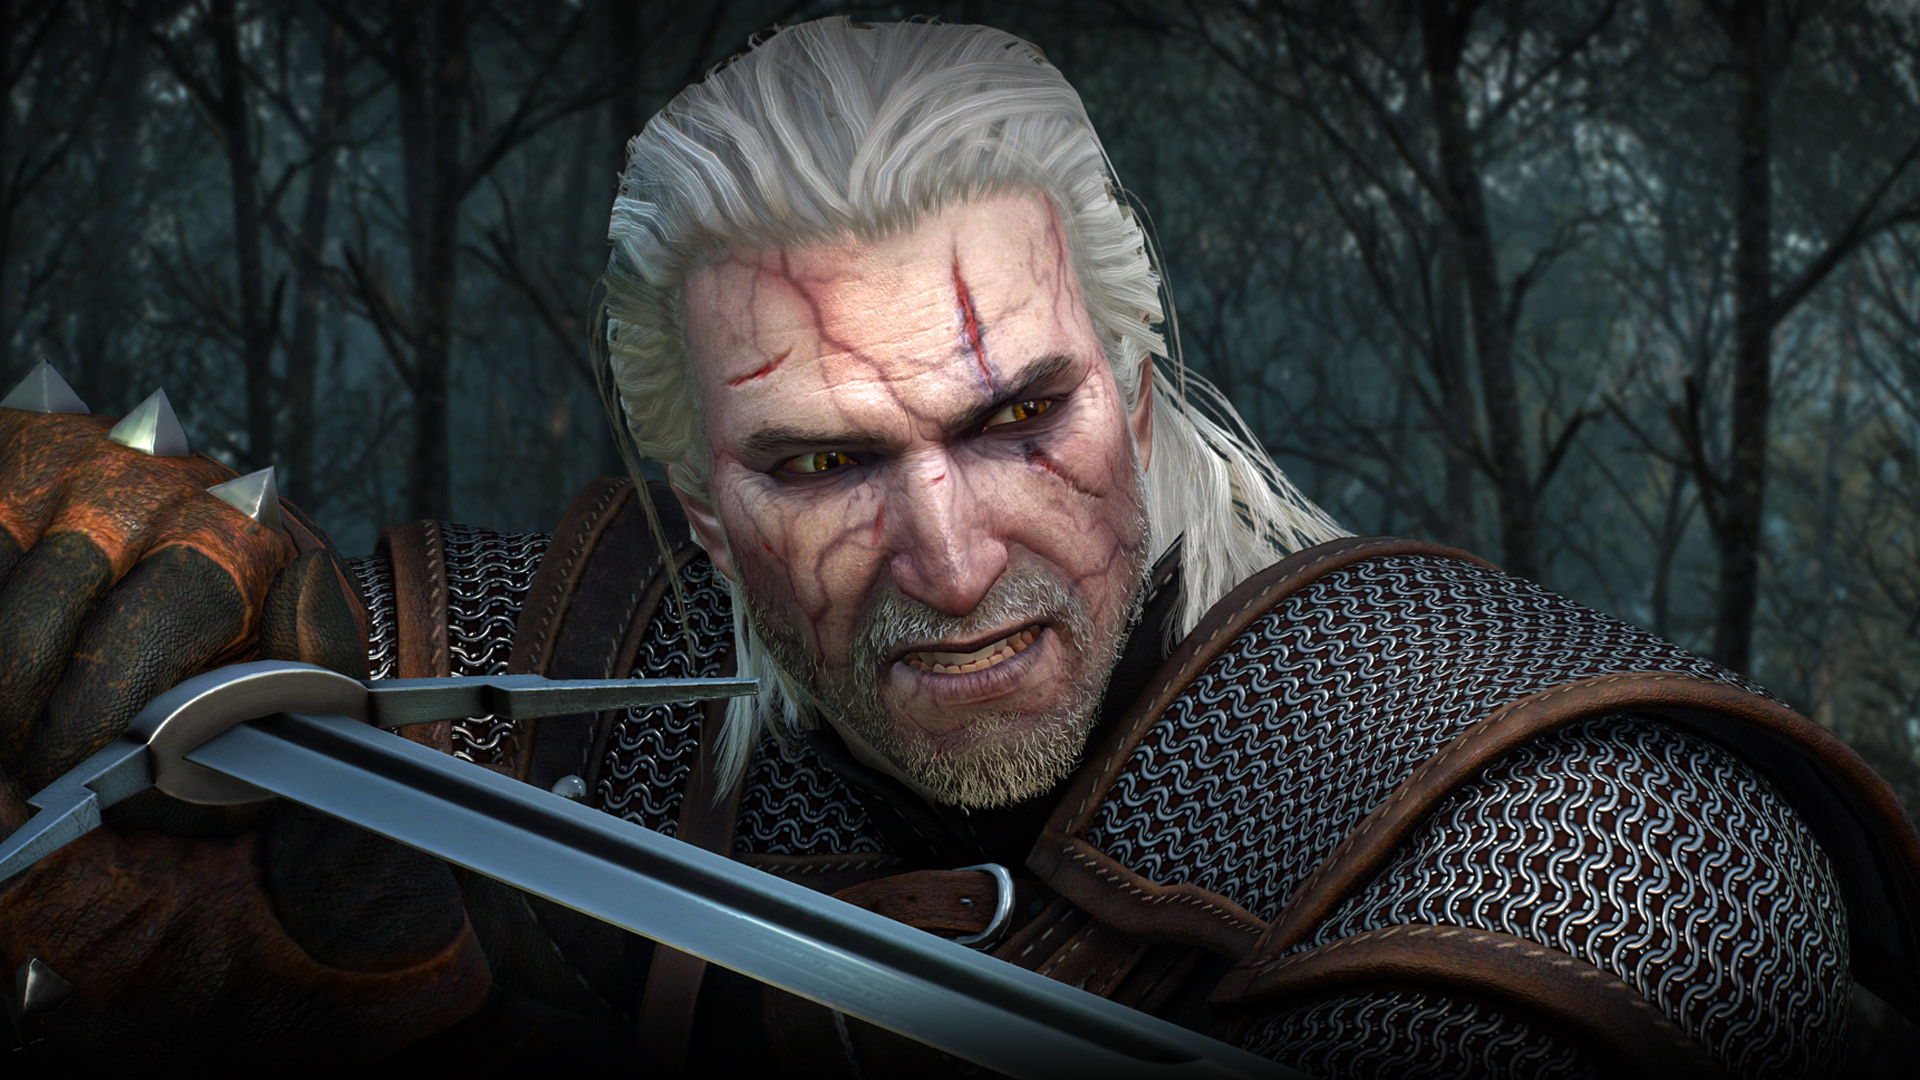 'The Witcher' Netflix Series Gets New Casting Details